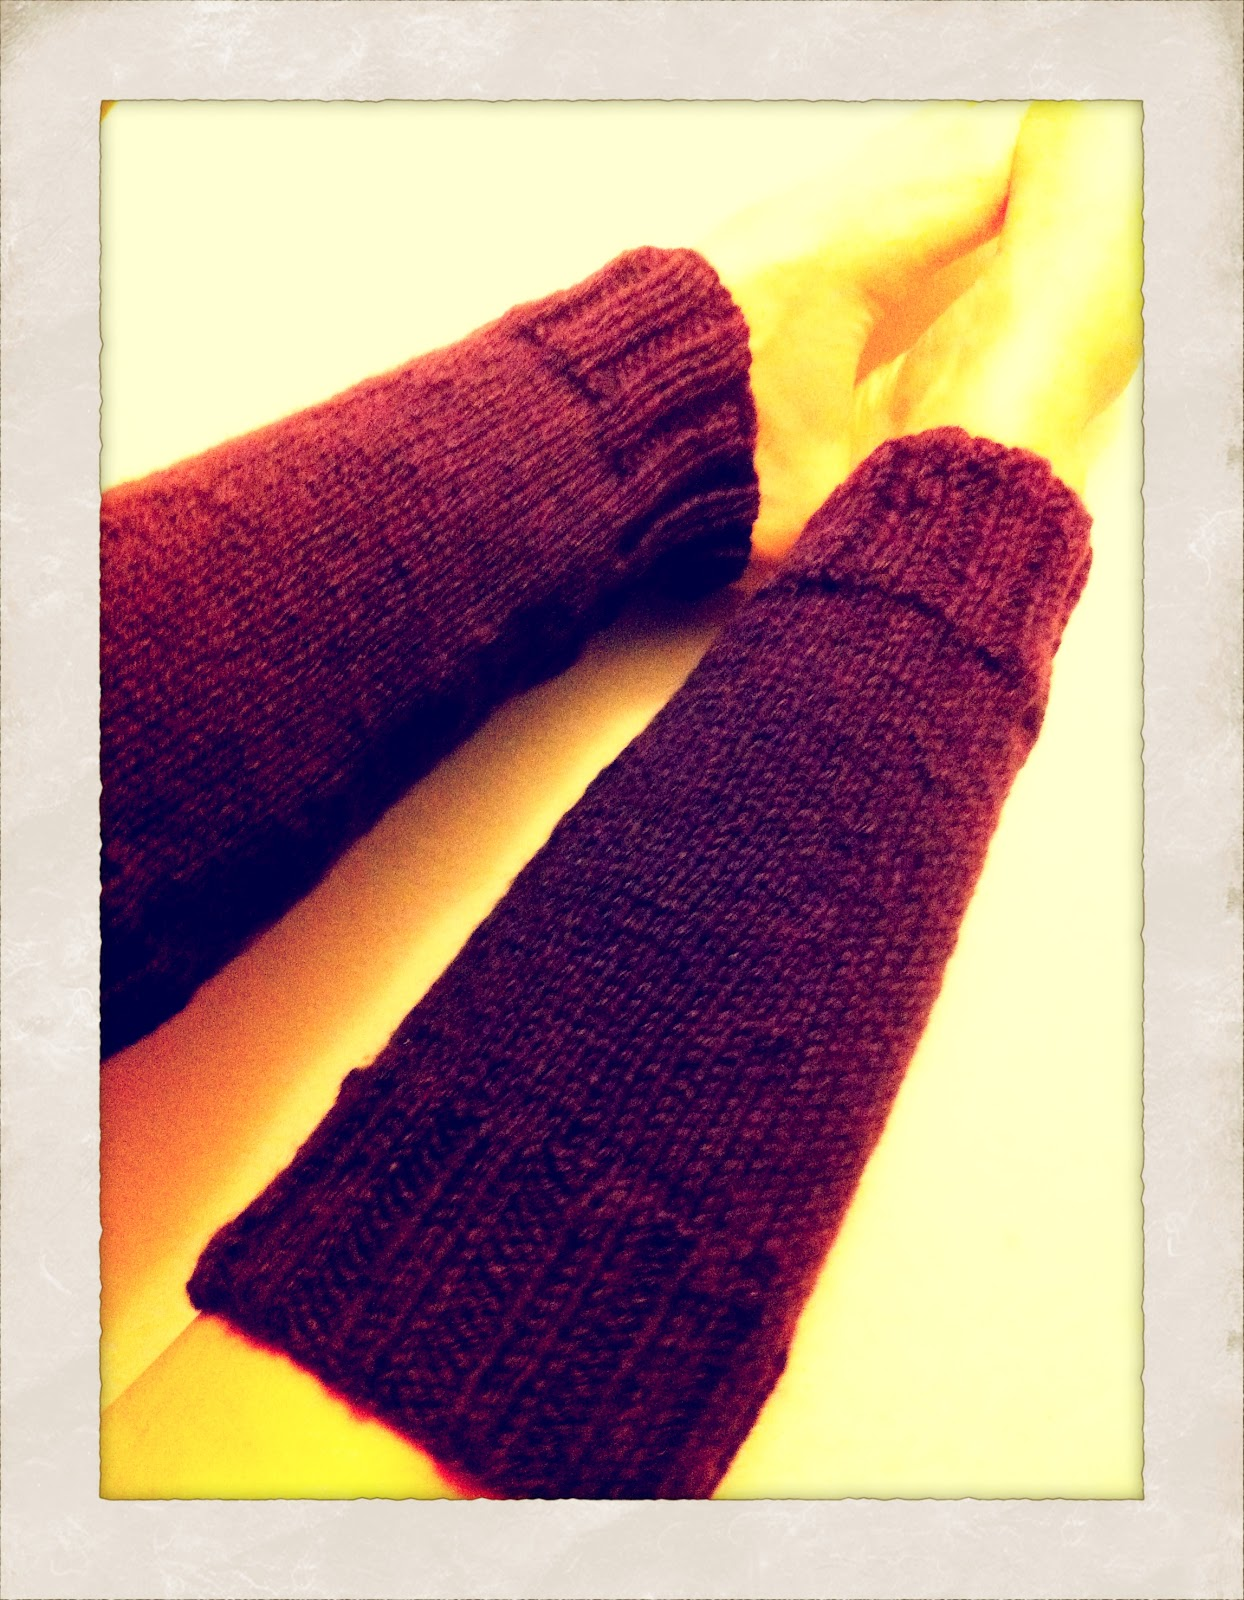 Civic Stitchings: My first knitting pattern... drumroll.... leg warmers!